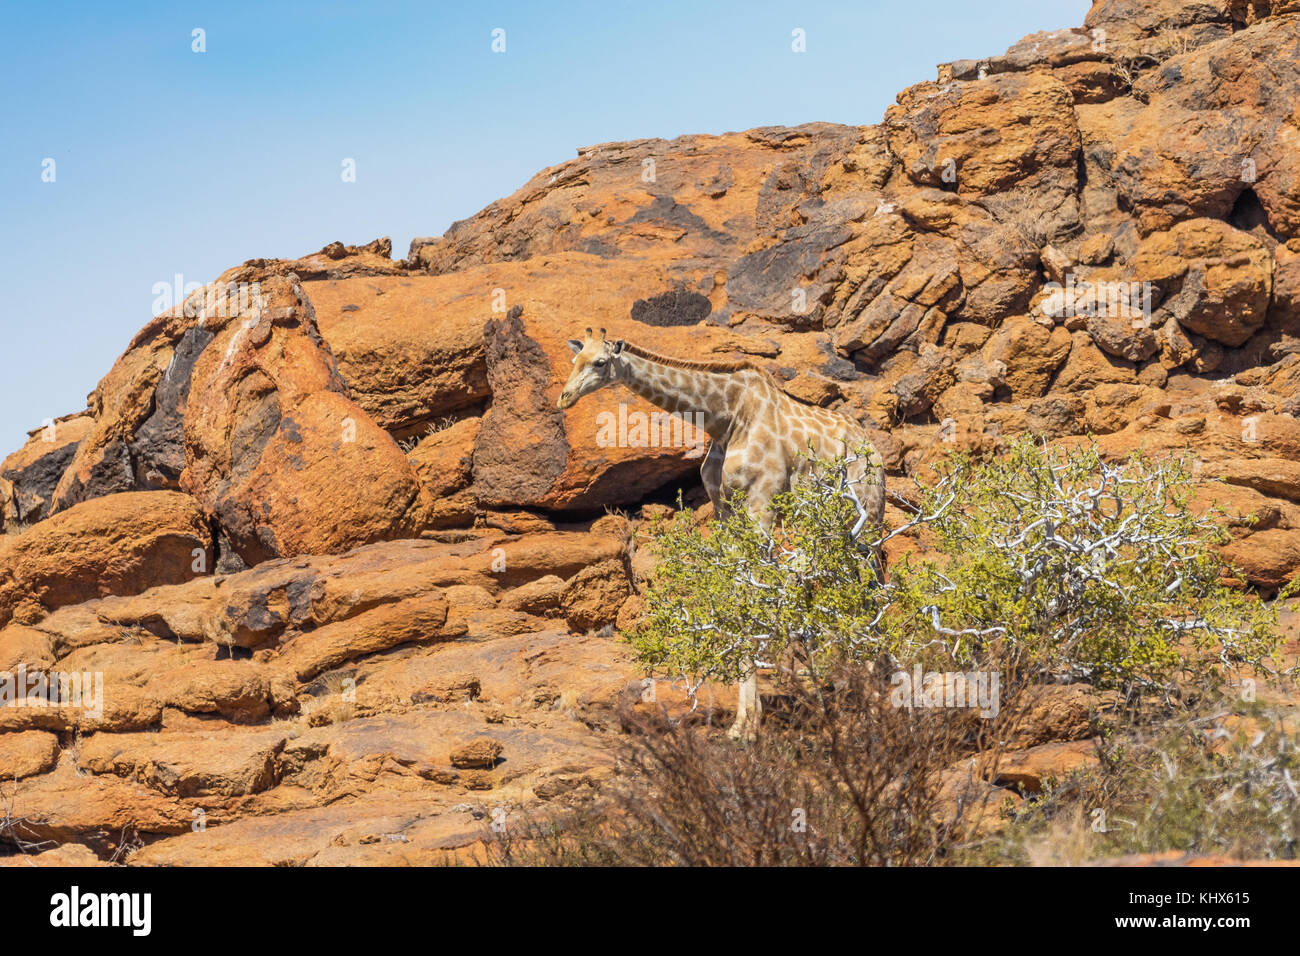 A giraffe in the arid environment of Augrabies Falls National Park in South Africa. - Stock Image